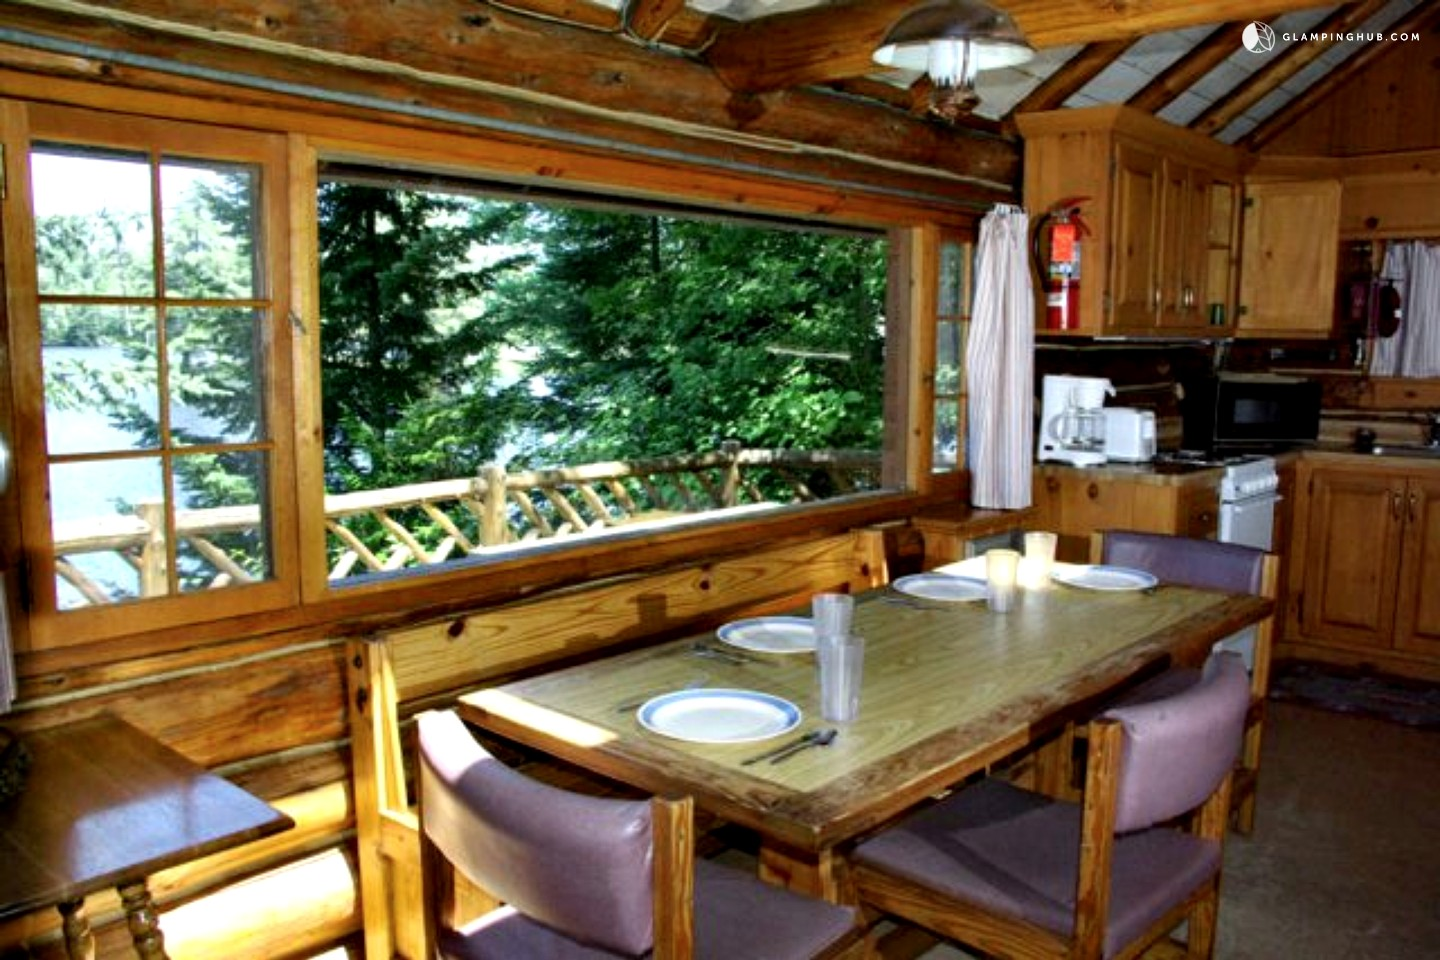 Log cabin rental near saratoga springs for Saratoga springs vacation rentals